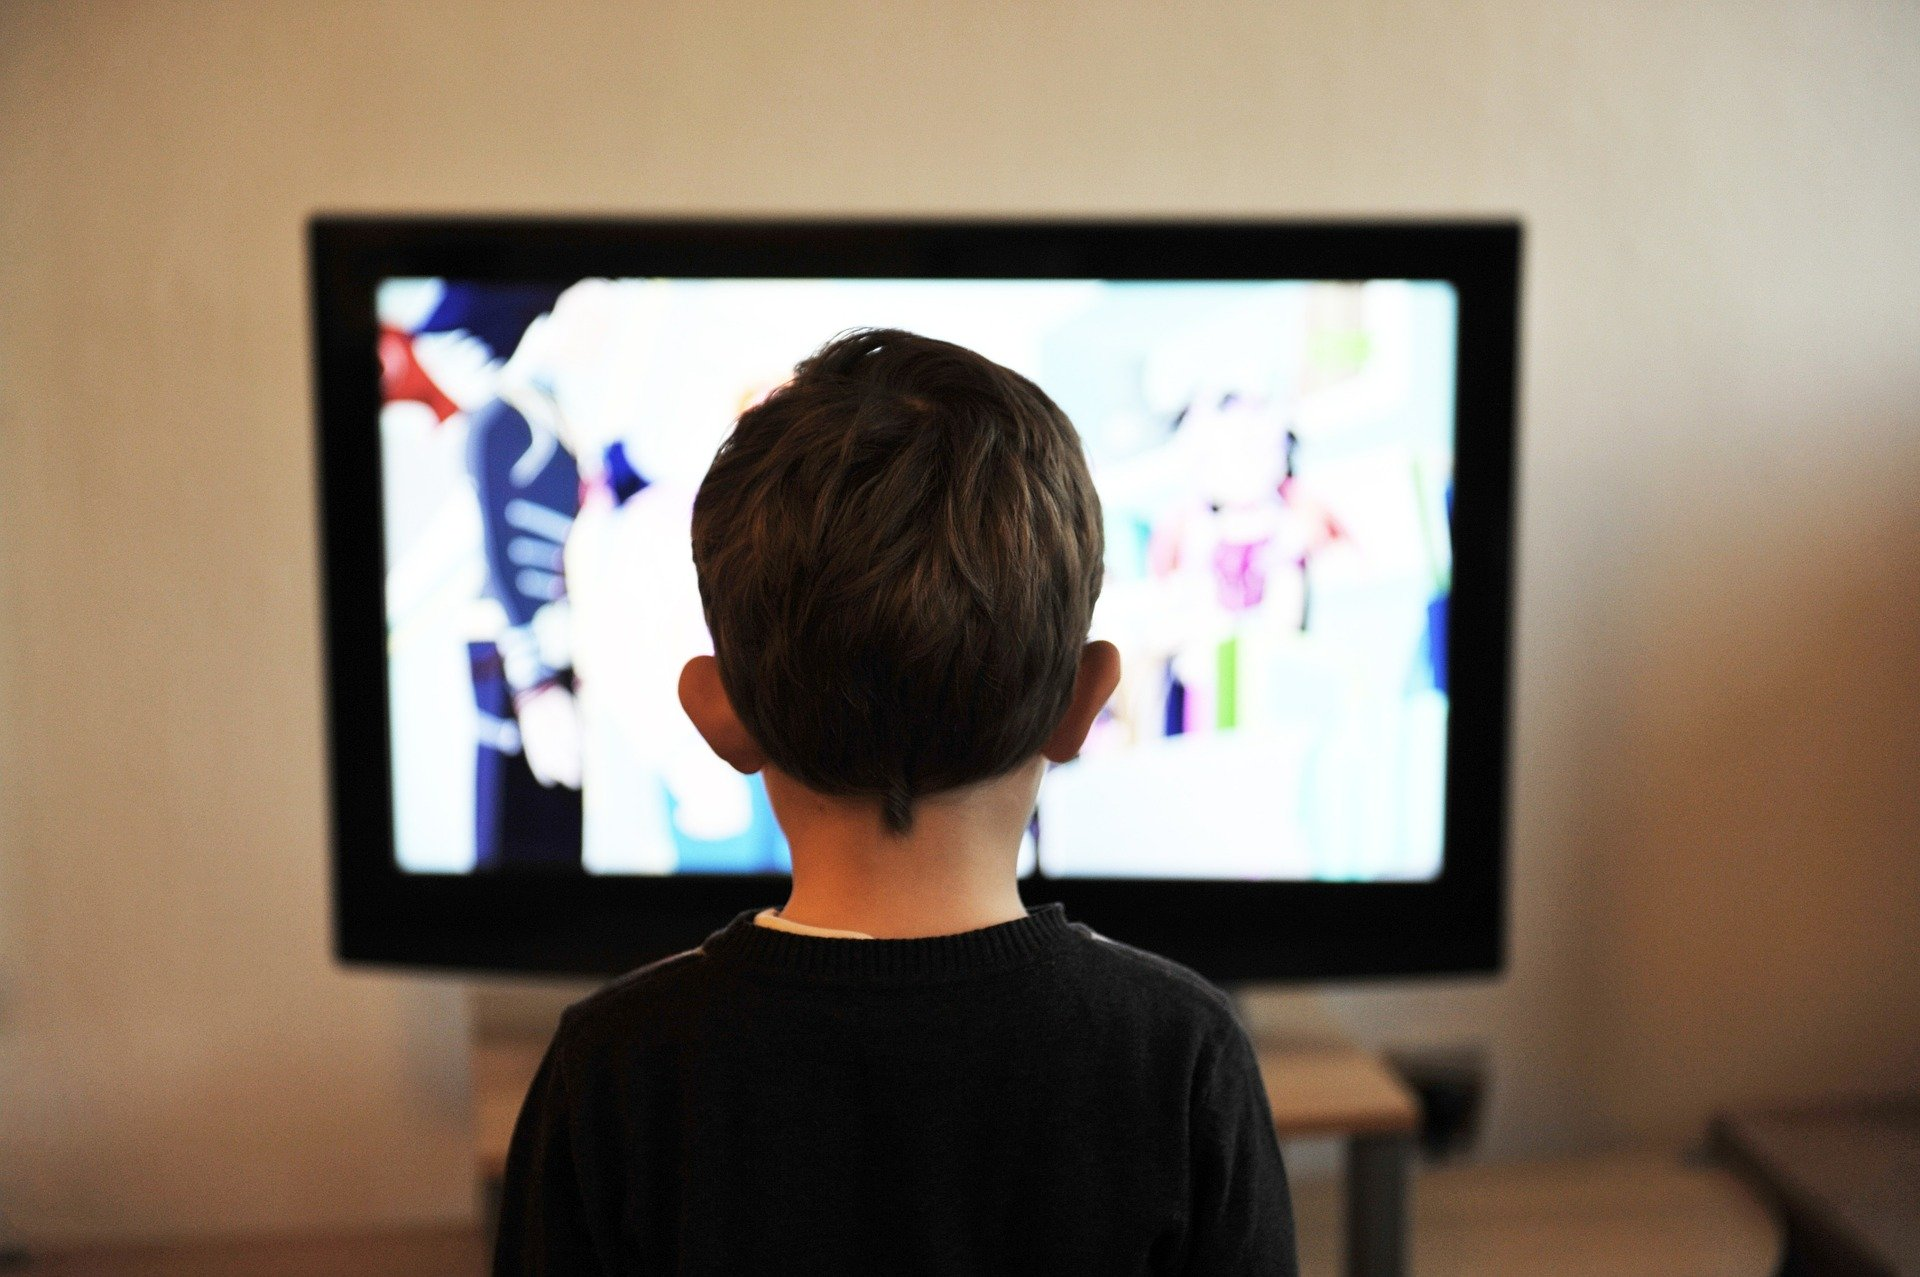 TV child watching image